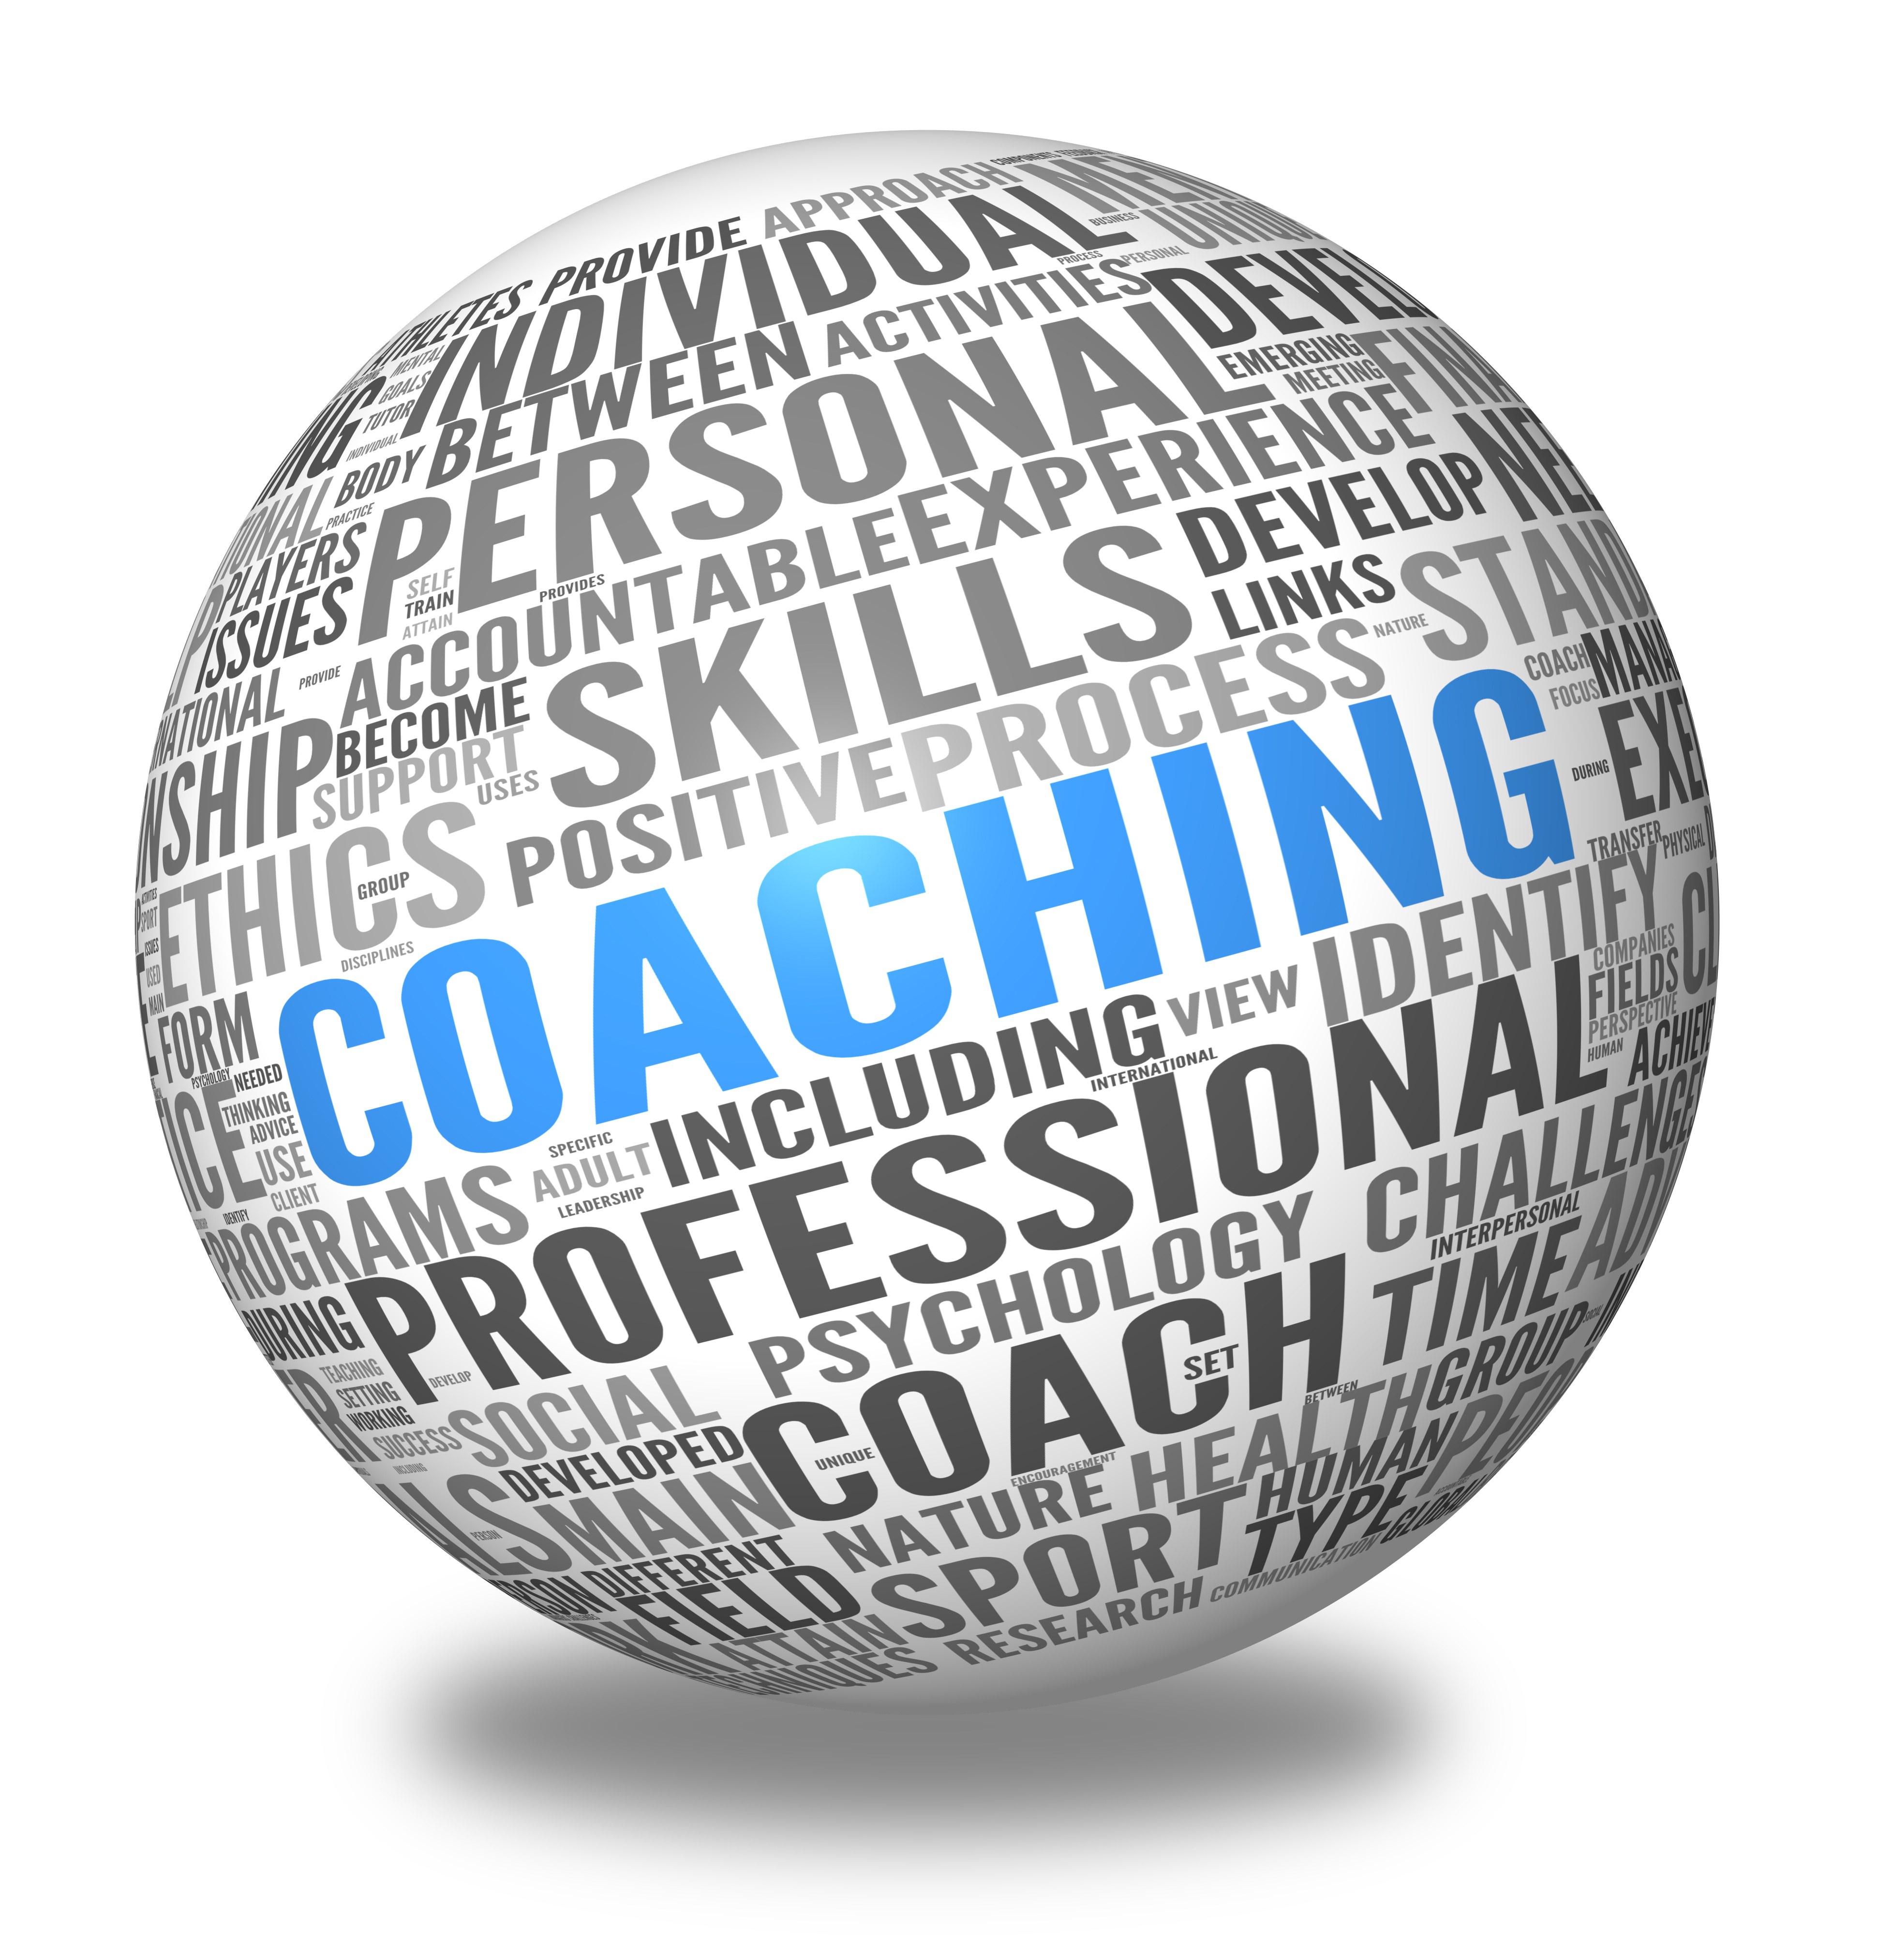 testimonials coach cathy shaughnessy perspective in action